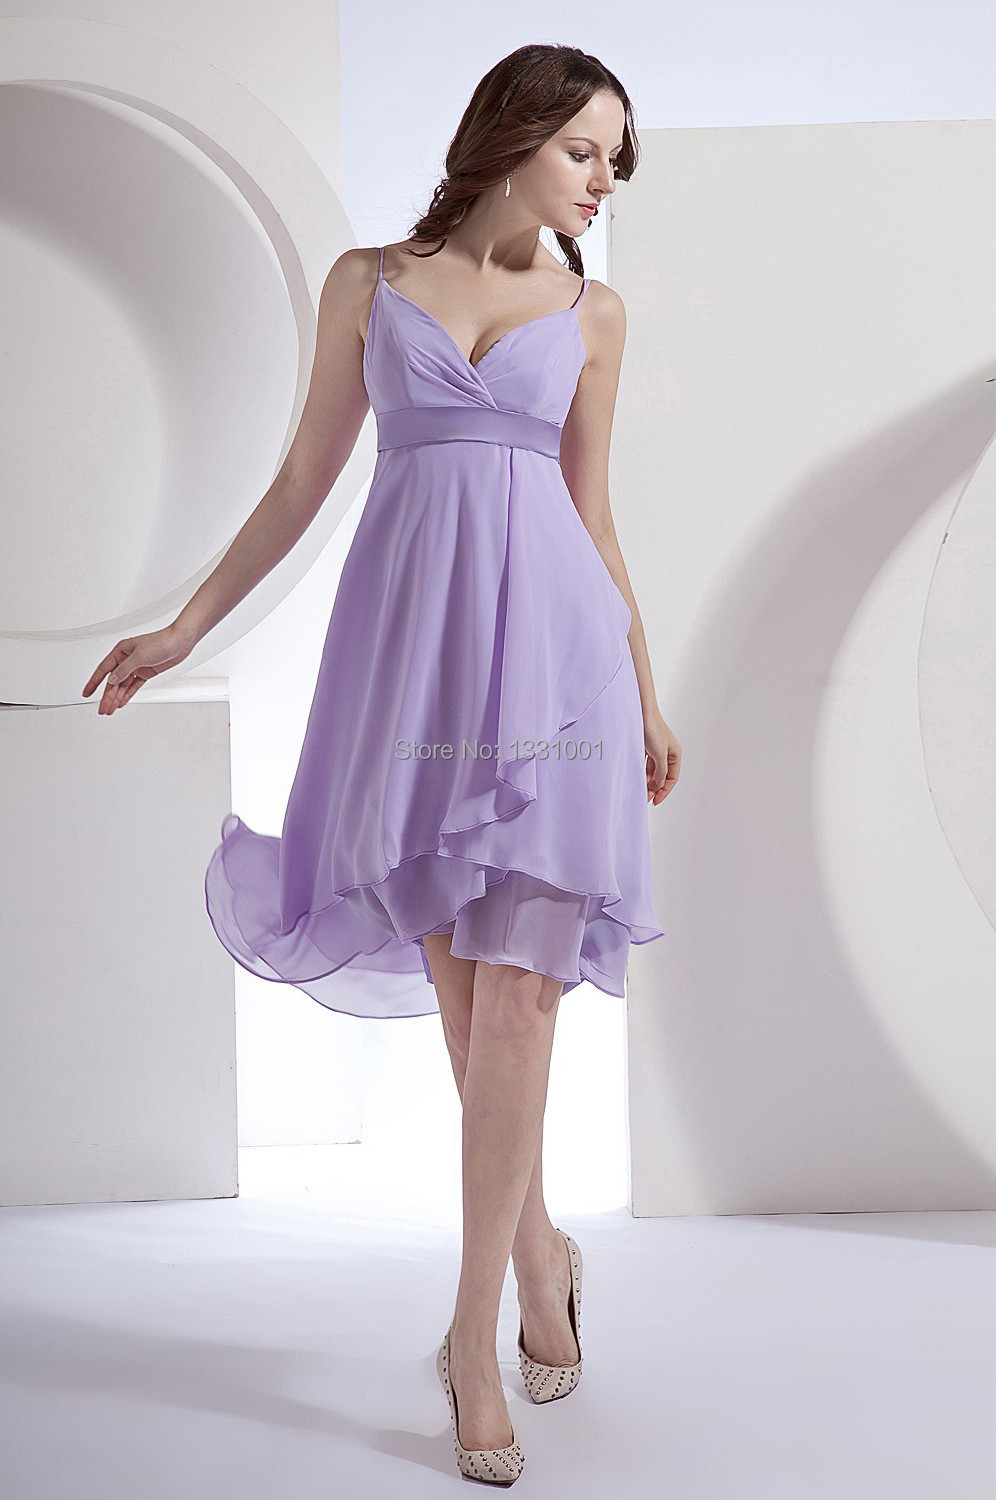 Online get cheap short bridesmaid dress 2015 sweetheart sleeveless vestido de festa short lavender bridesmaid dresses 2015 new arrival chiffon party dress vestidos para formatura ombrellifo Gallery